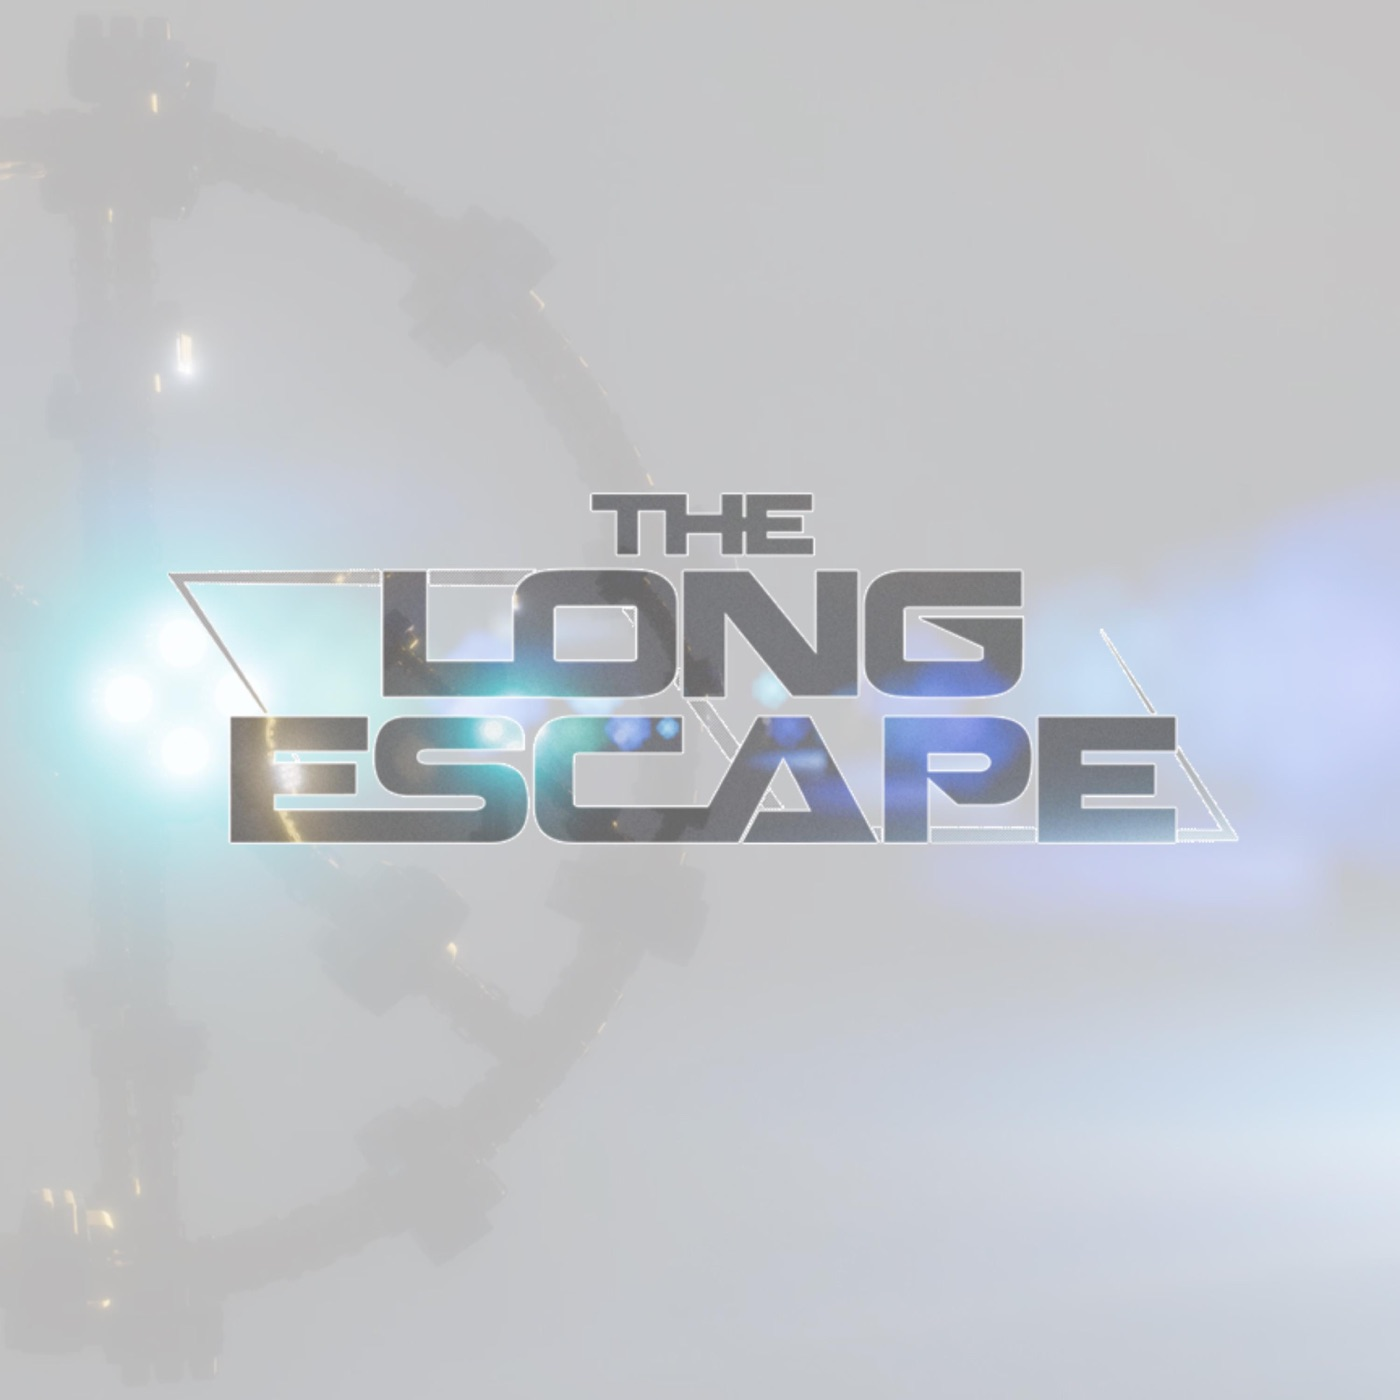 The Long Escape - The Long Escape (2020)